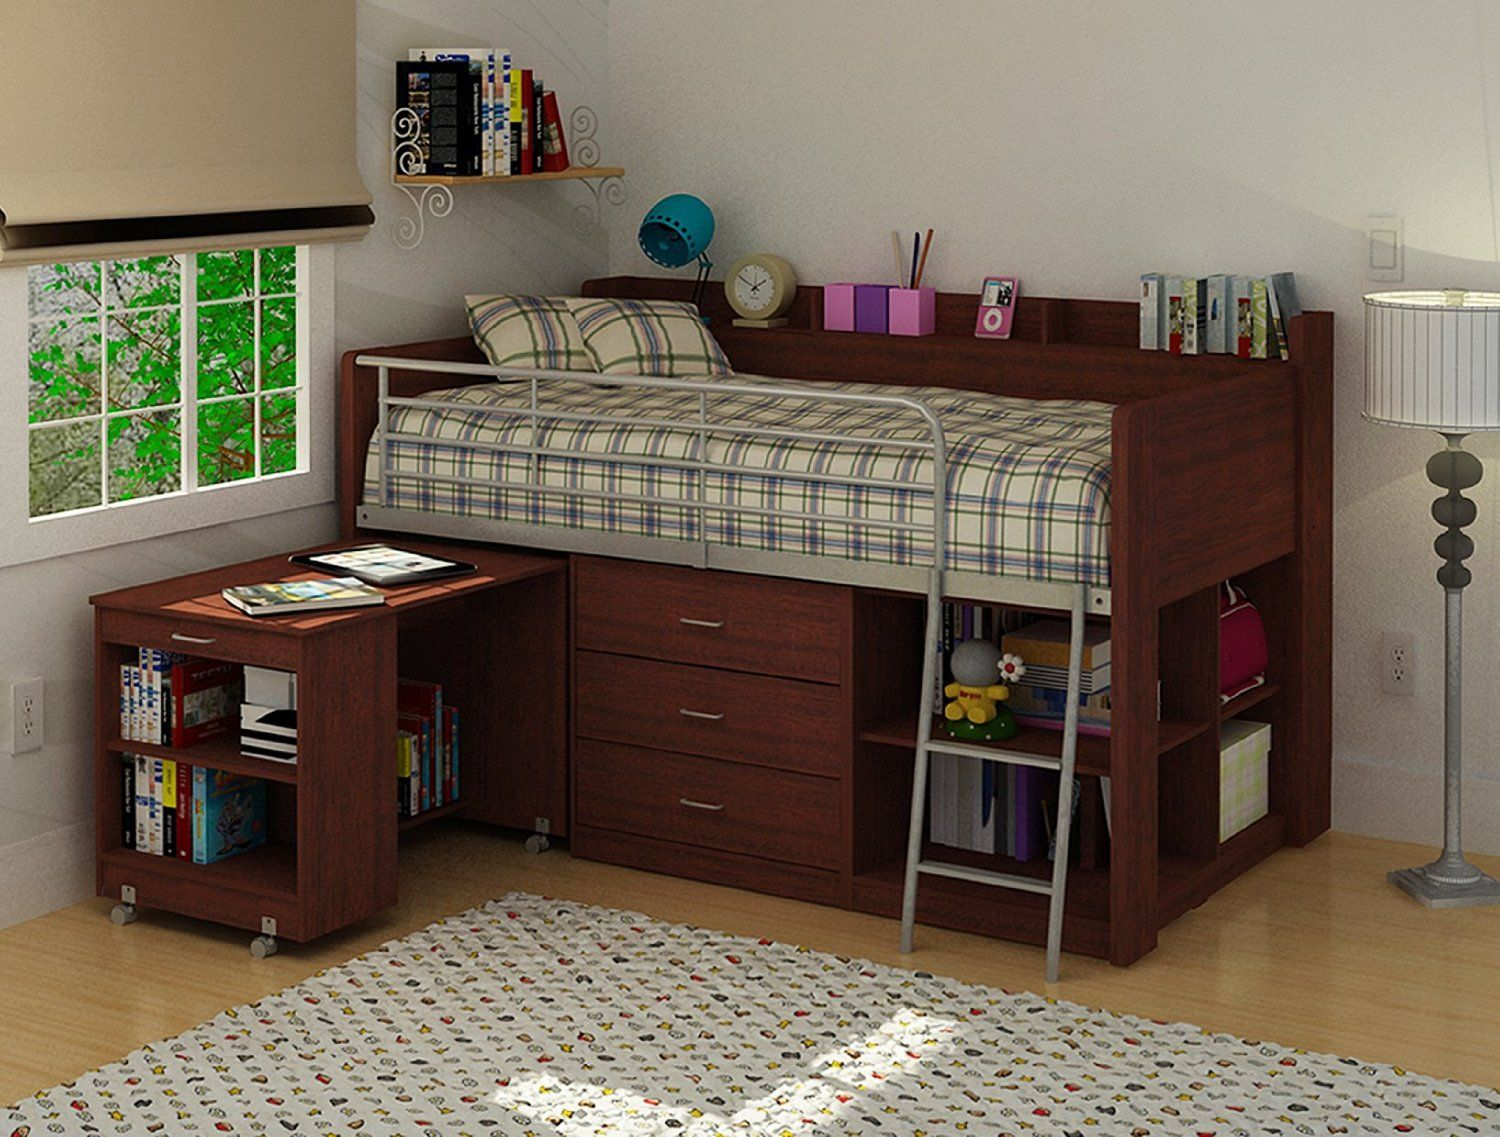 Kids bunk beds with desks valuable 17 kids loft beds with desk underneath cool low wooden kids - Loft bed with drawers underneath ...